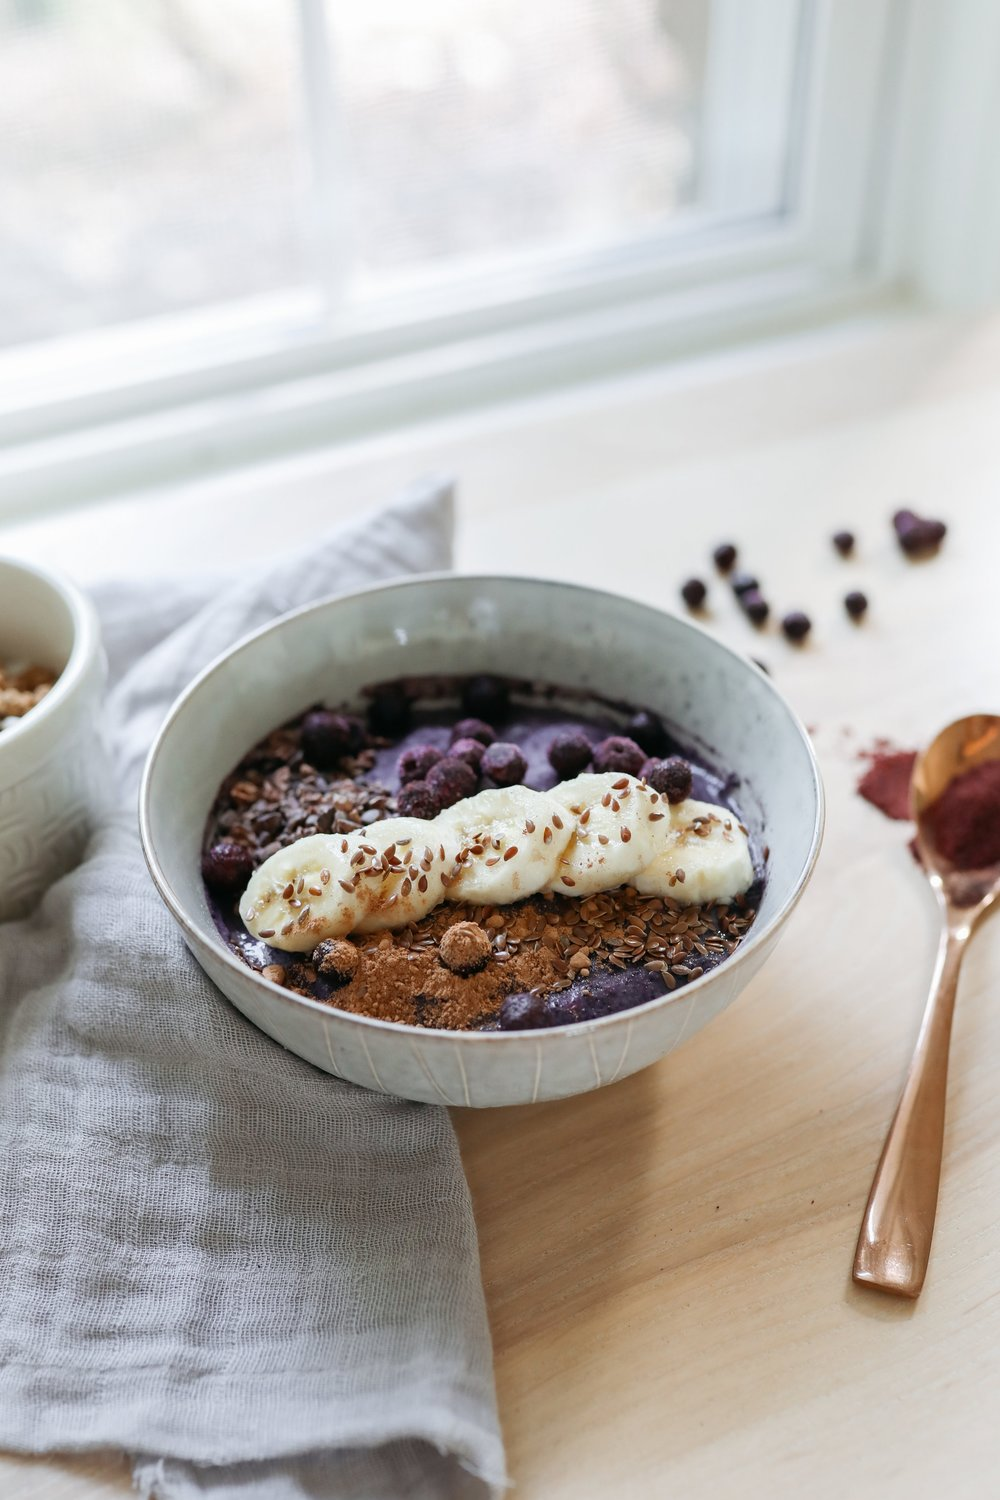 The purple acai smoothie bowl full of fruity goodness, a great smoothie recipe to start the day or have for lunch!